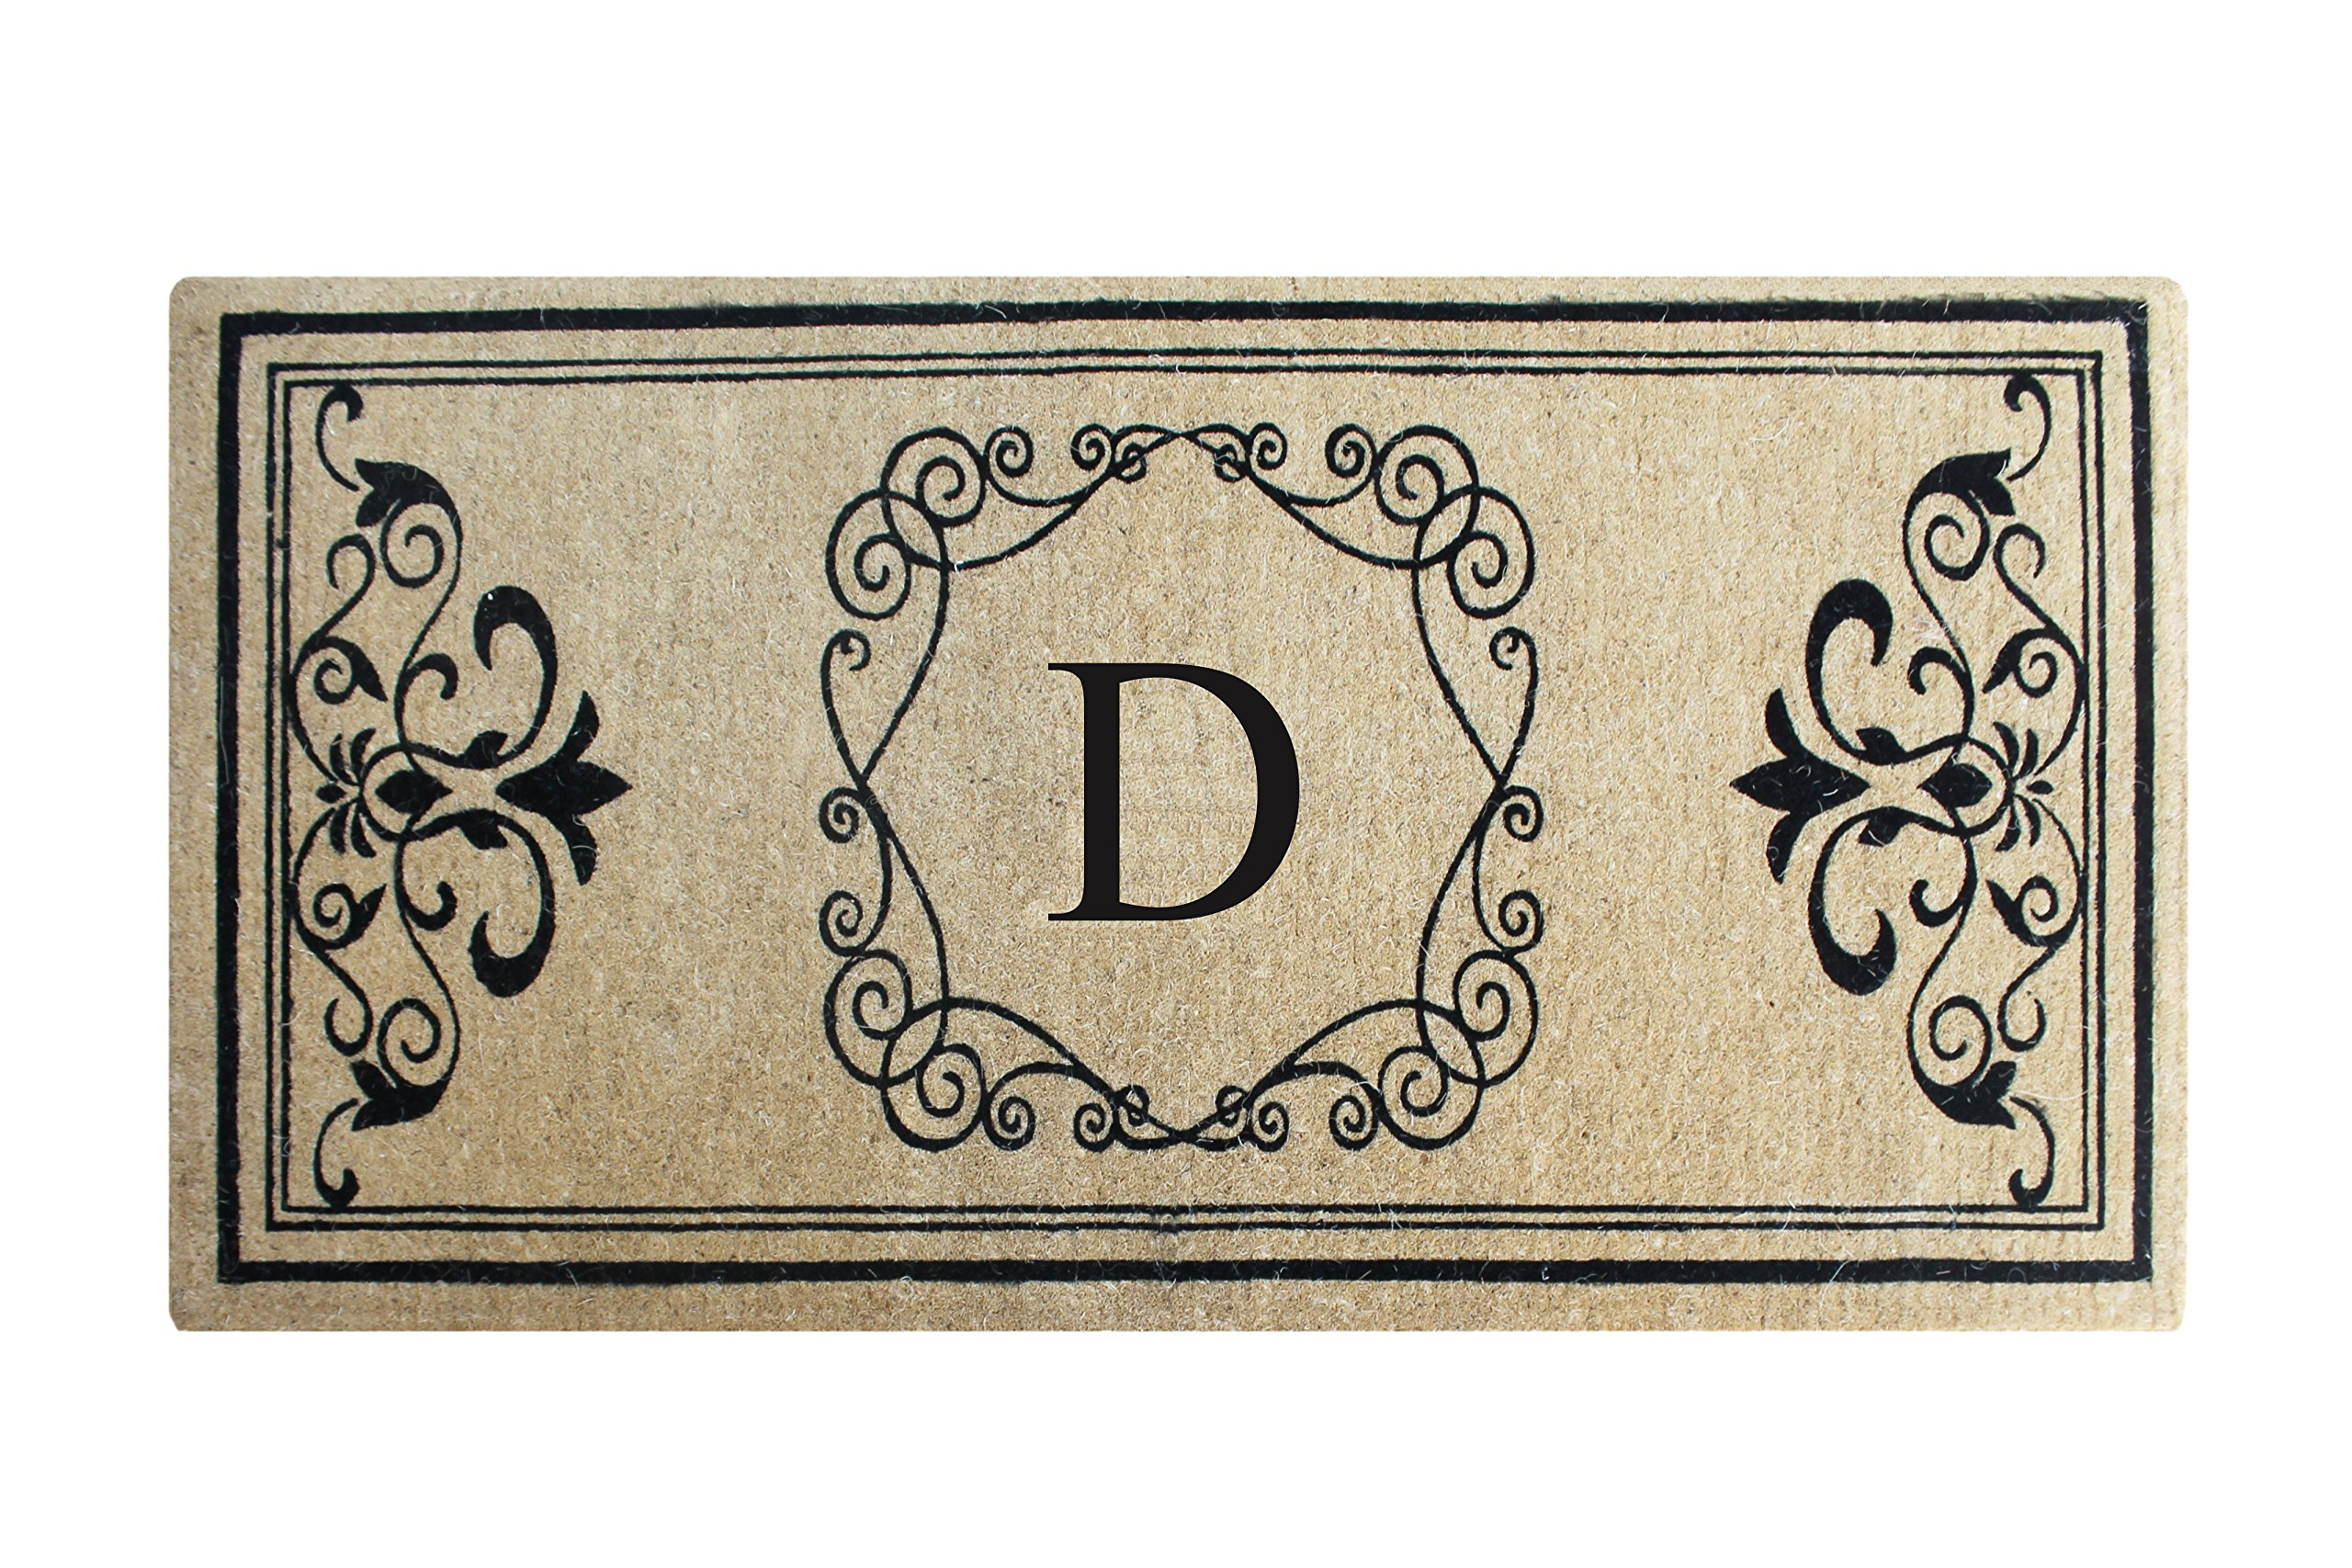 A1 Home Collections First Impression Hayley Estate Extra Thick And Durable Anti Shred Monogrammed Double Door Mat, 36'' W x 72'' L, X -Large